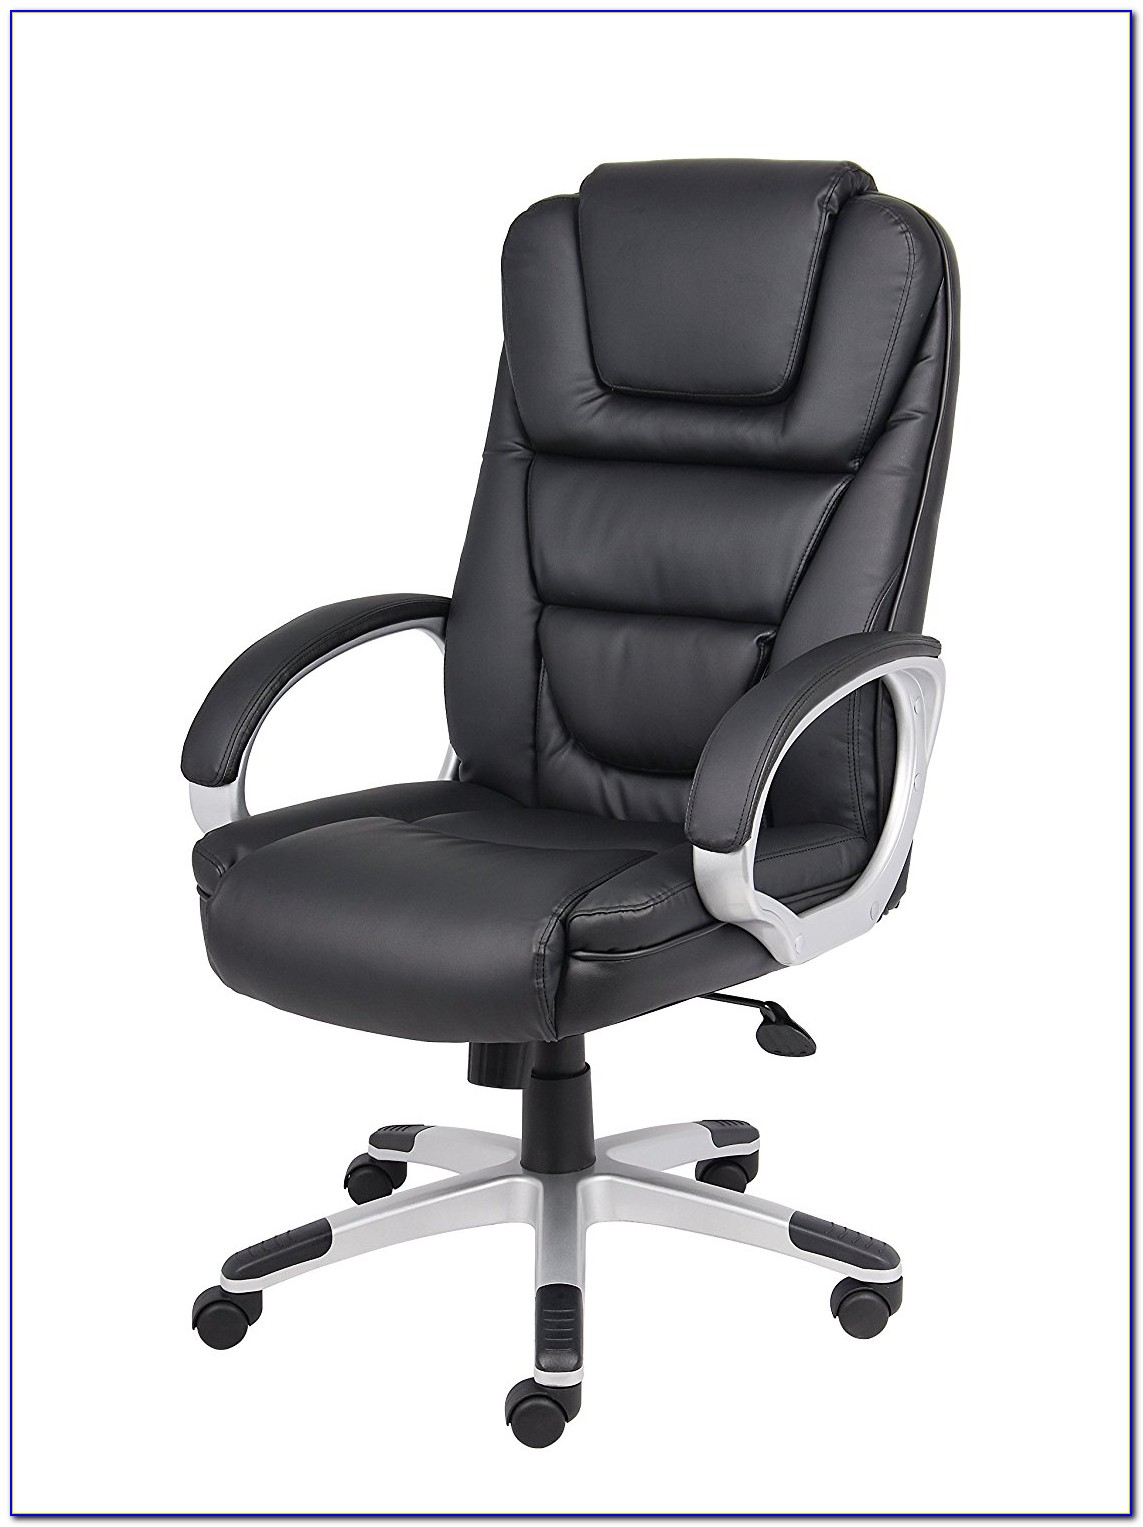 Best Office Chair For Back Pain Uk